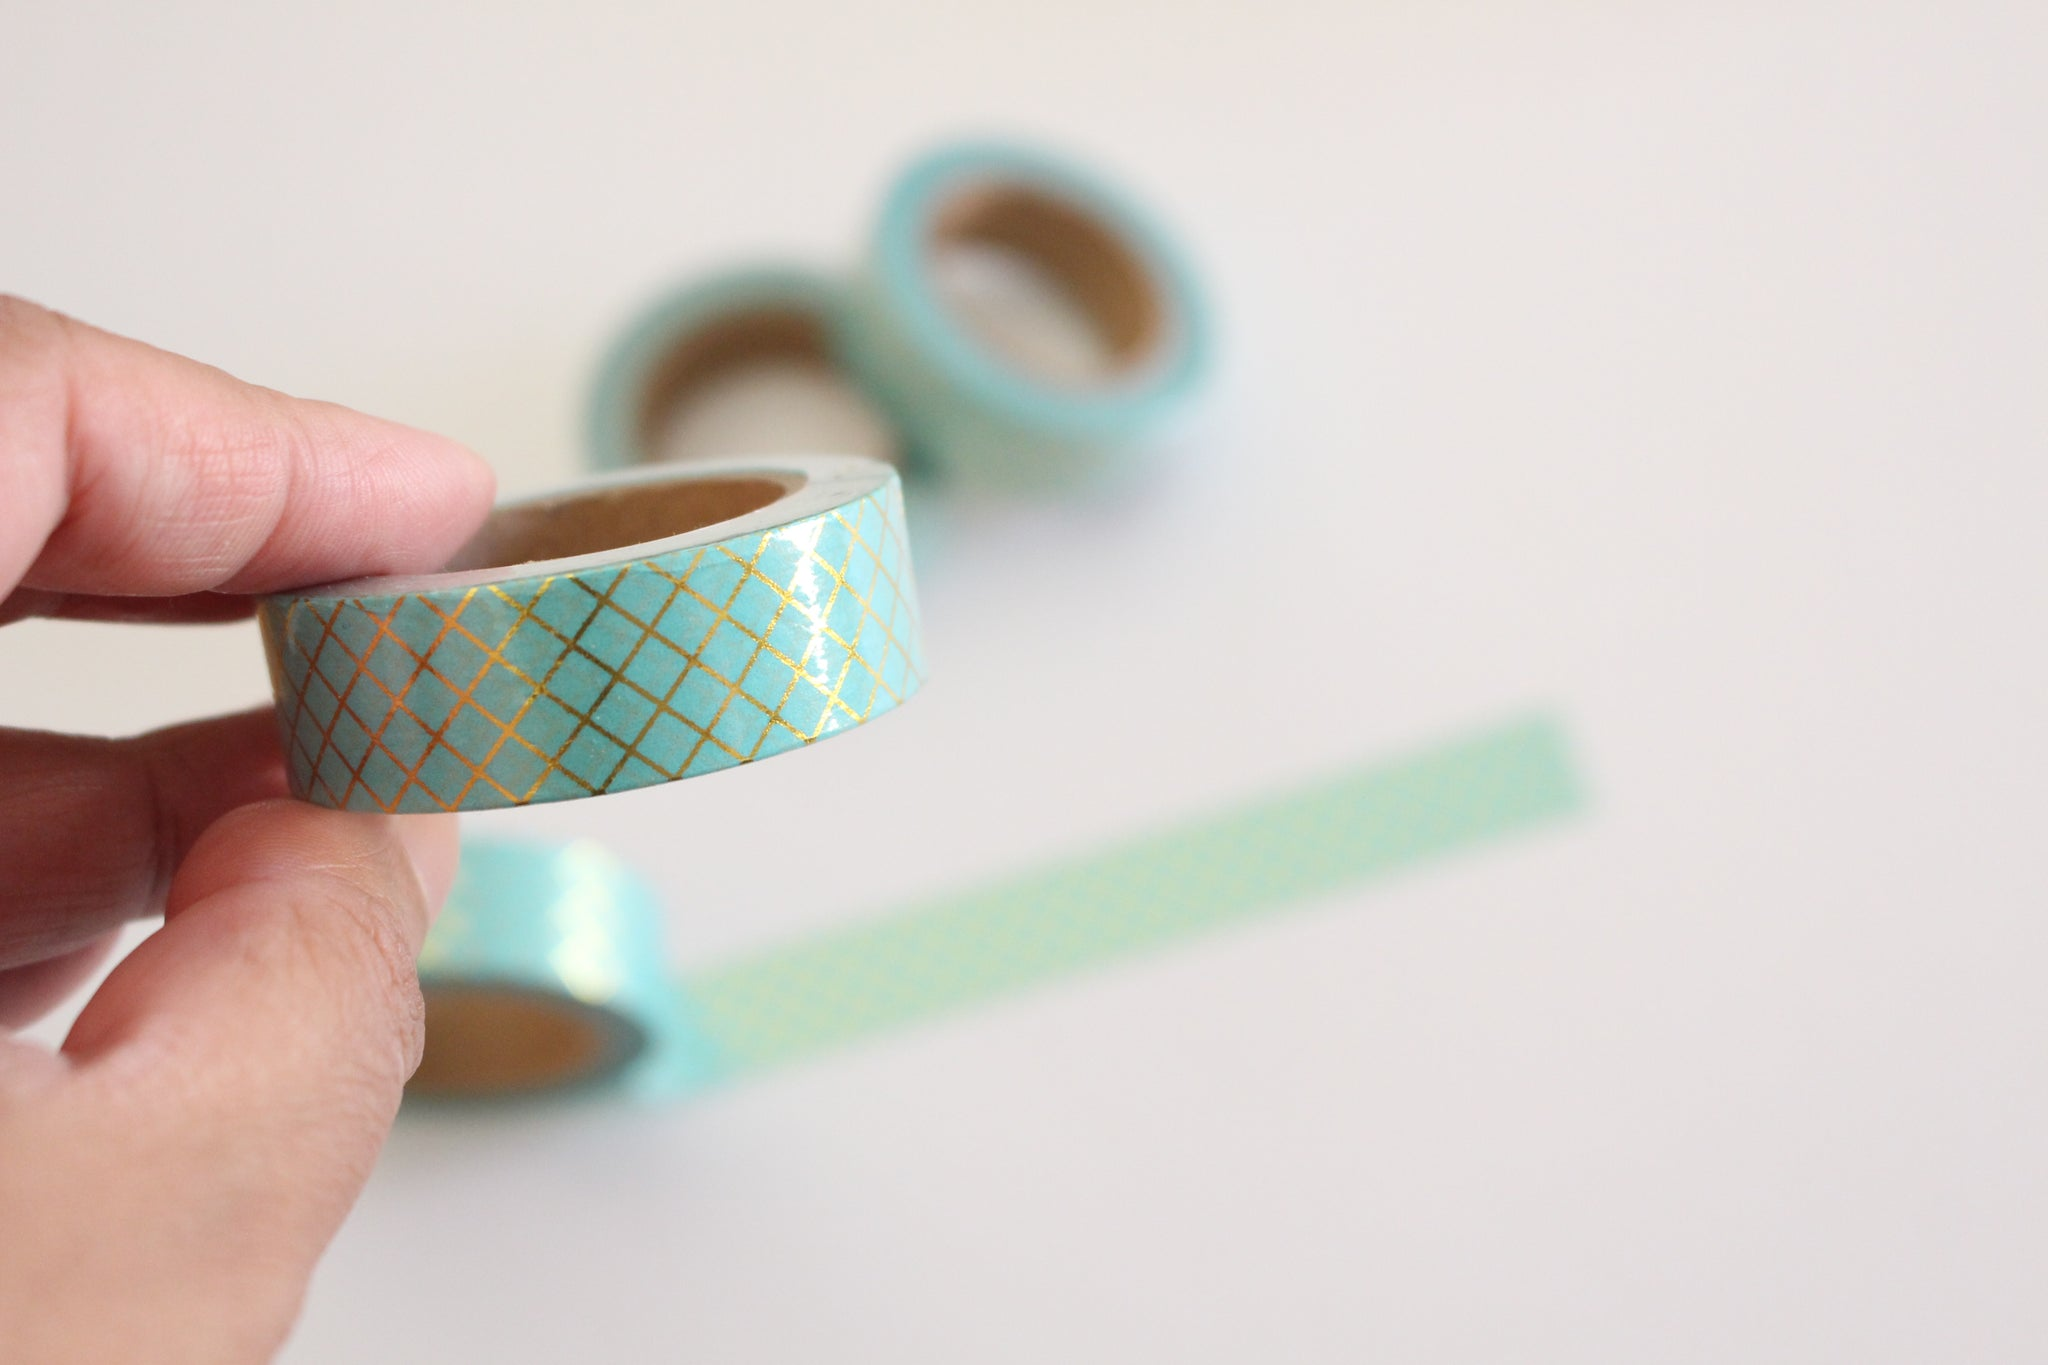 Gold foil lattice on mint washi tape